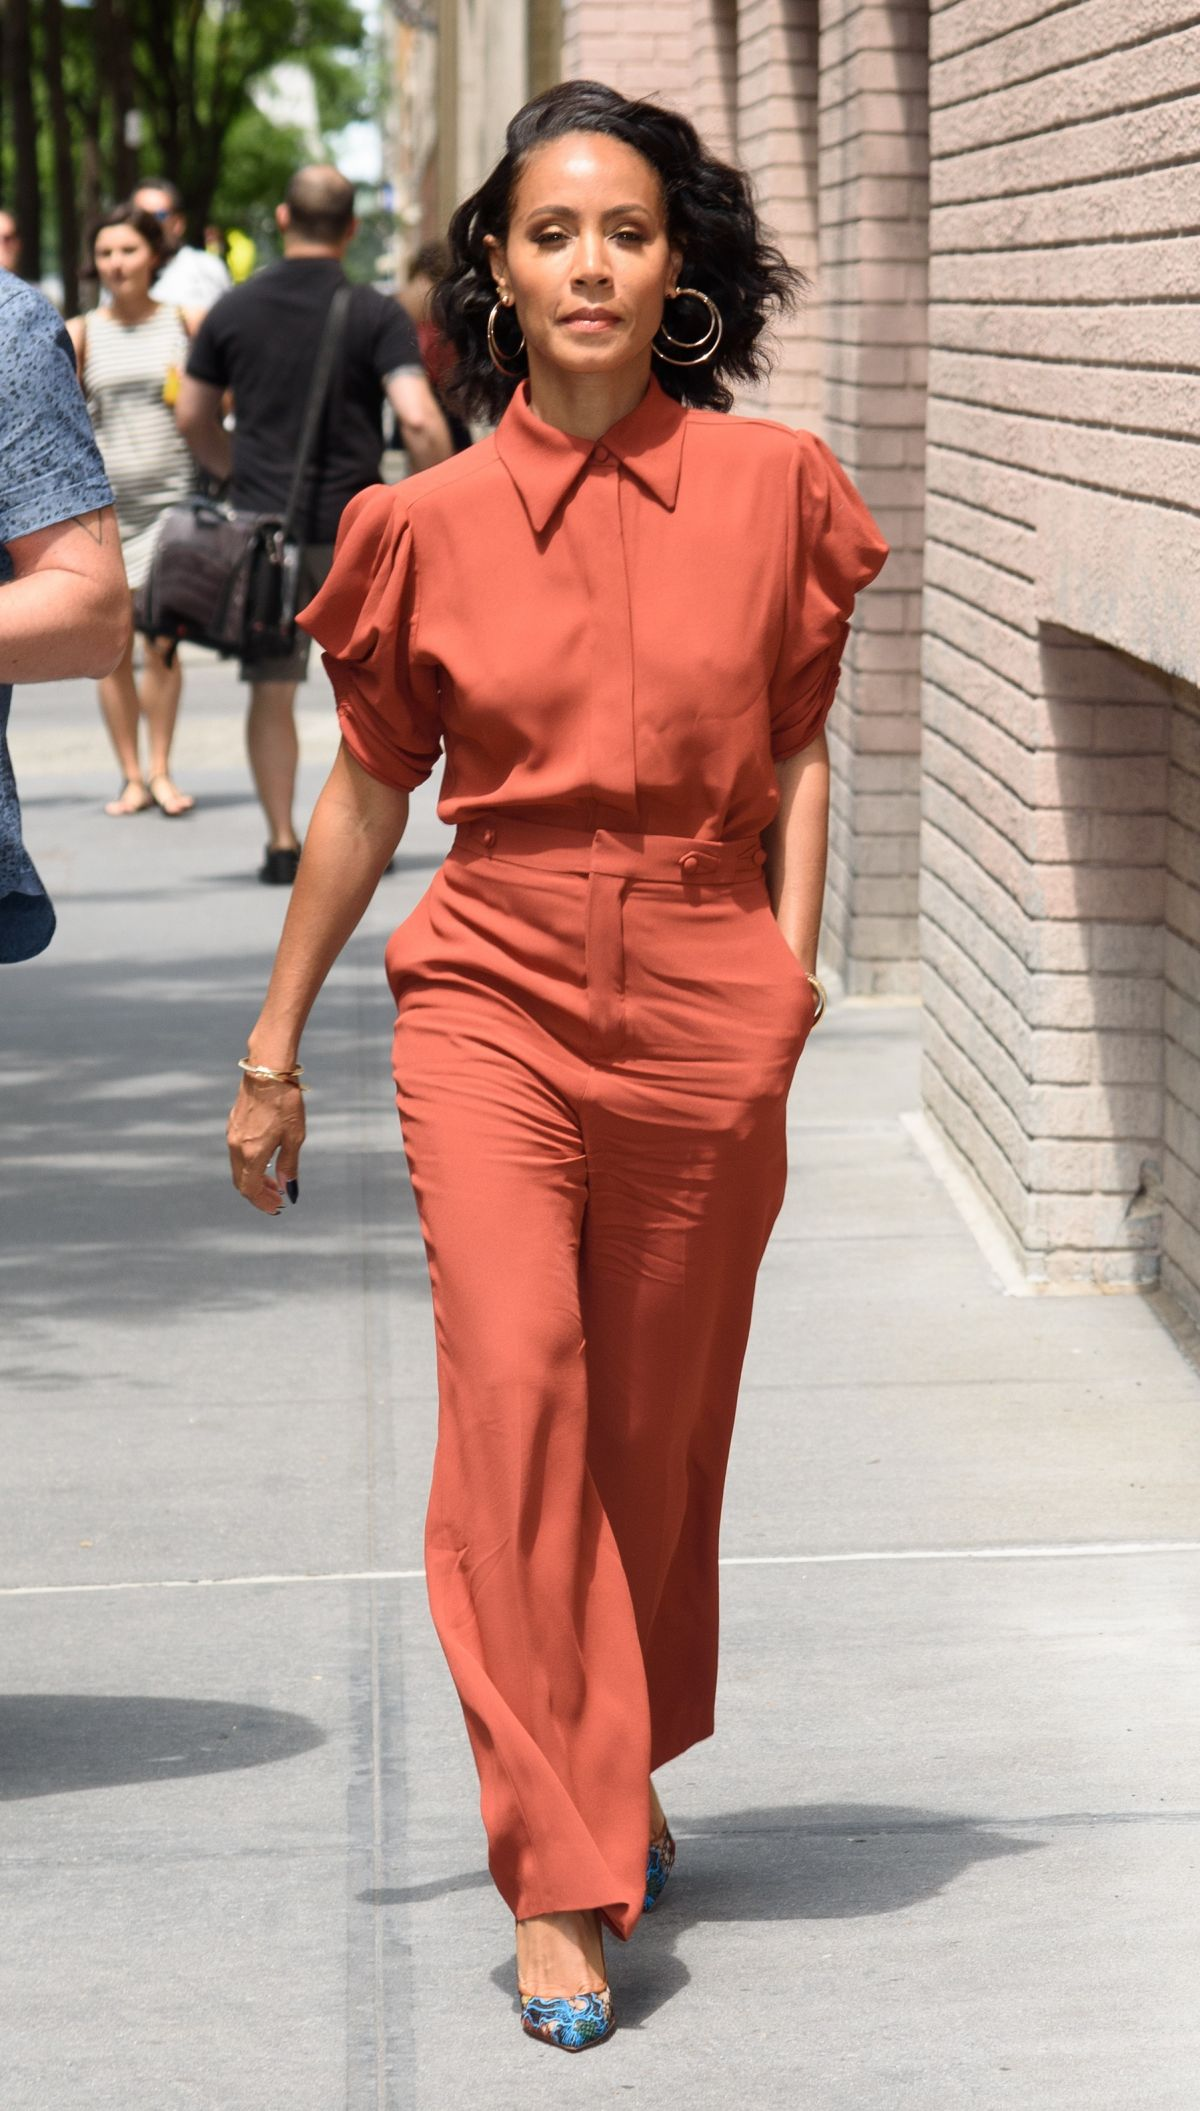 JADA PINKETT SMITH at The View in New York 07/17/2017 ...